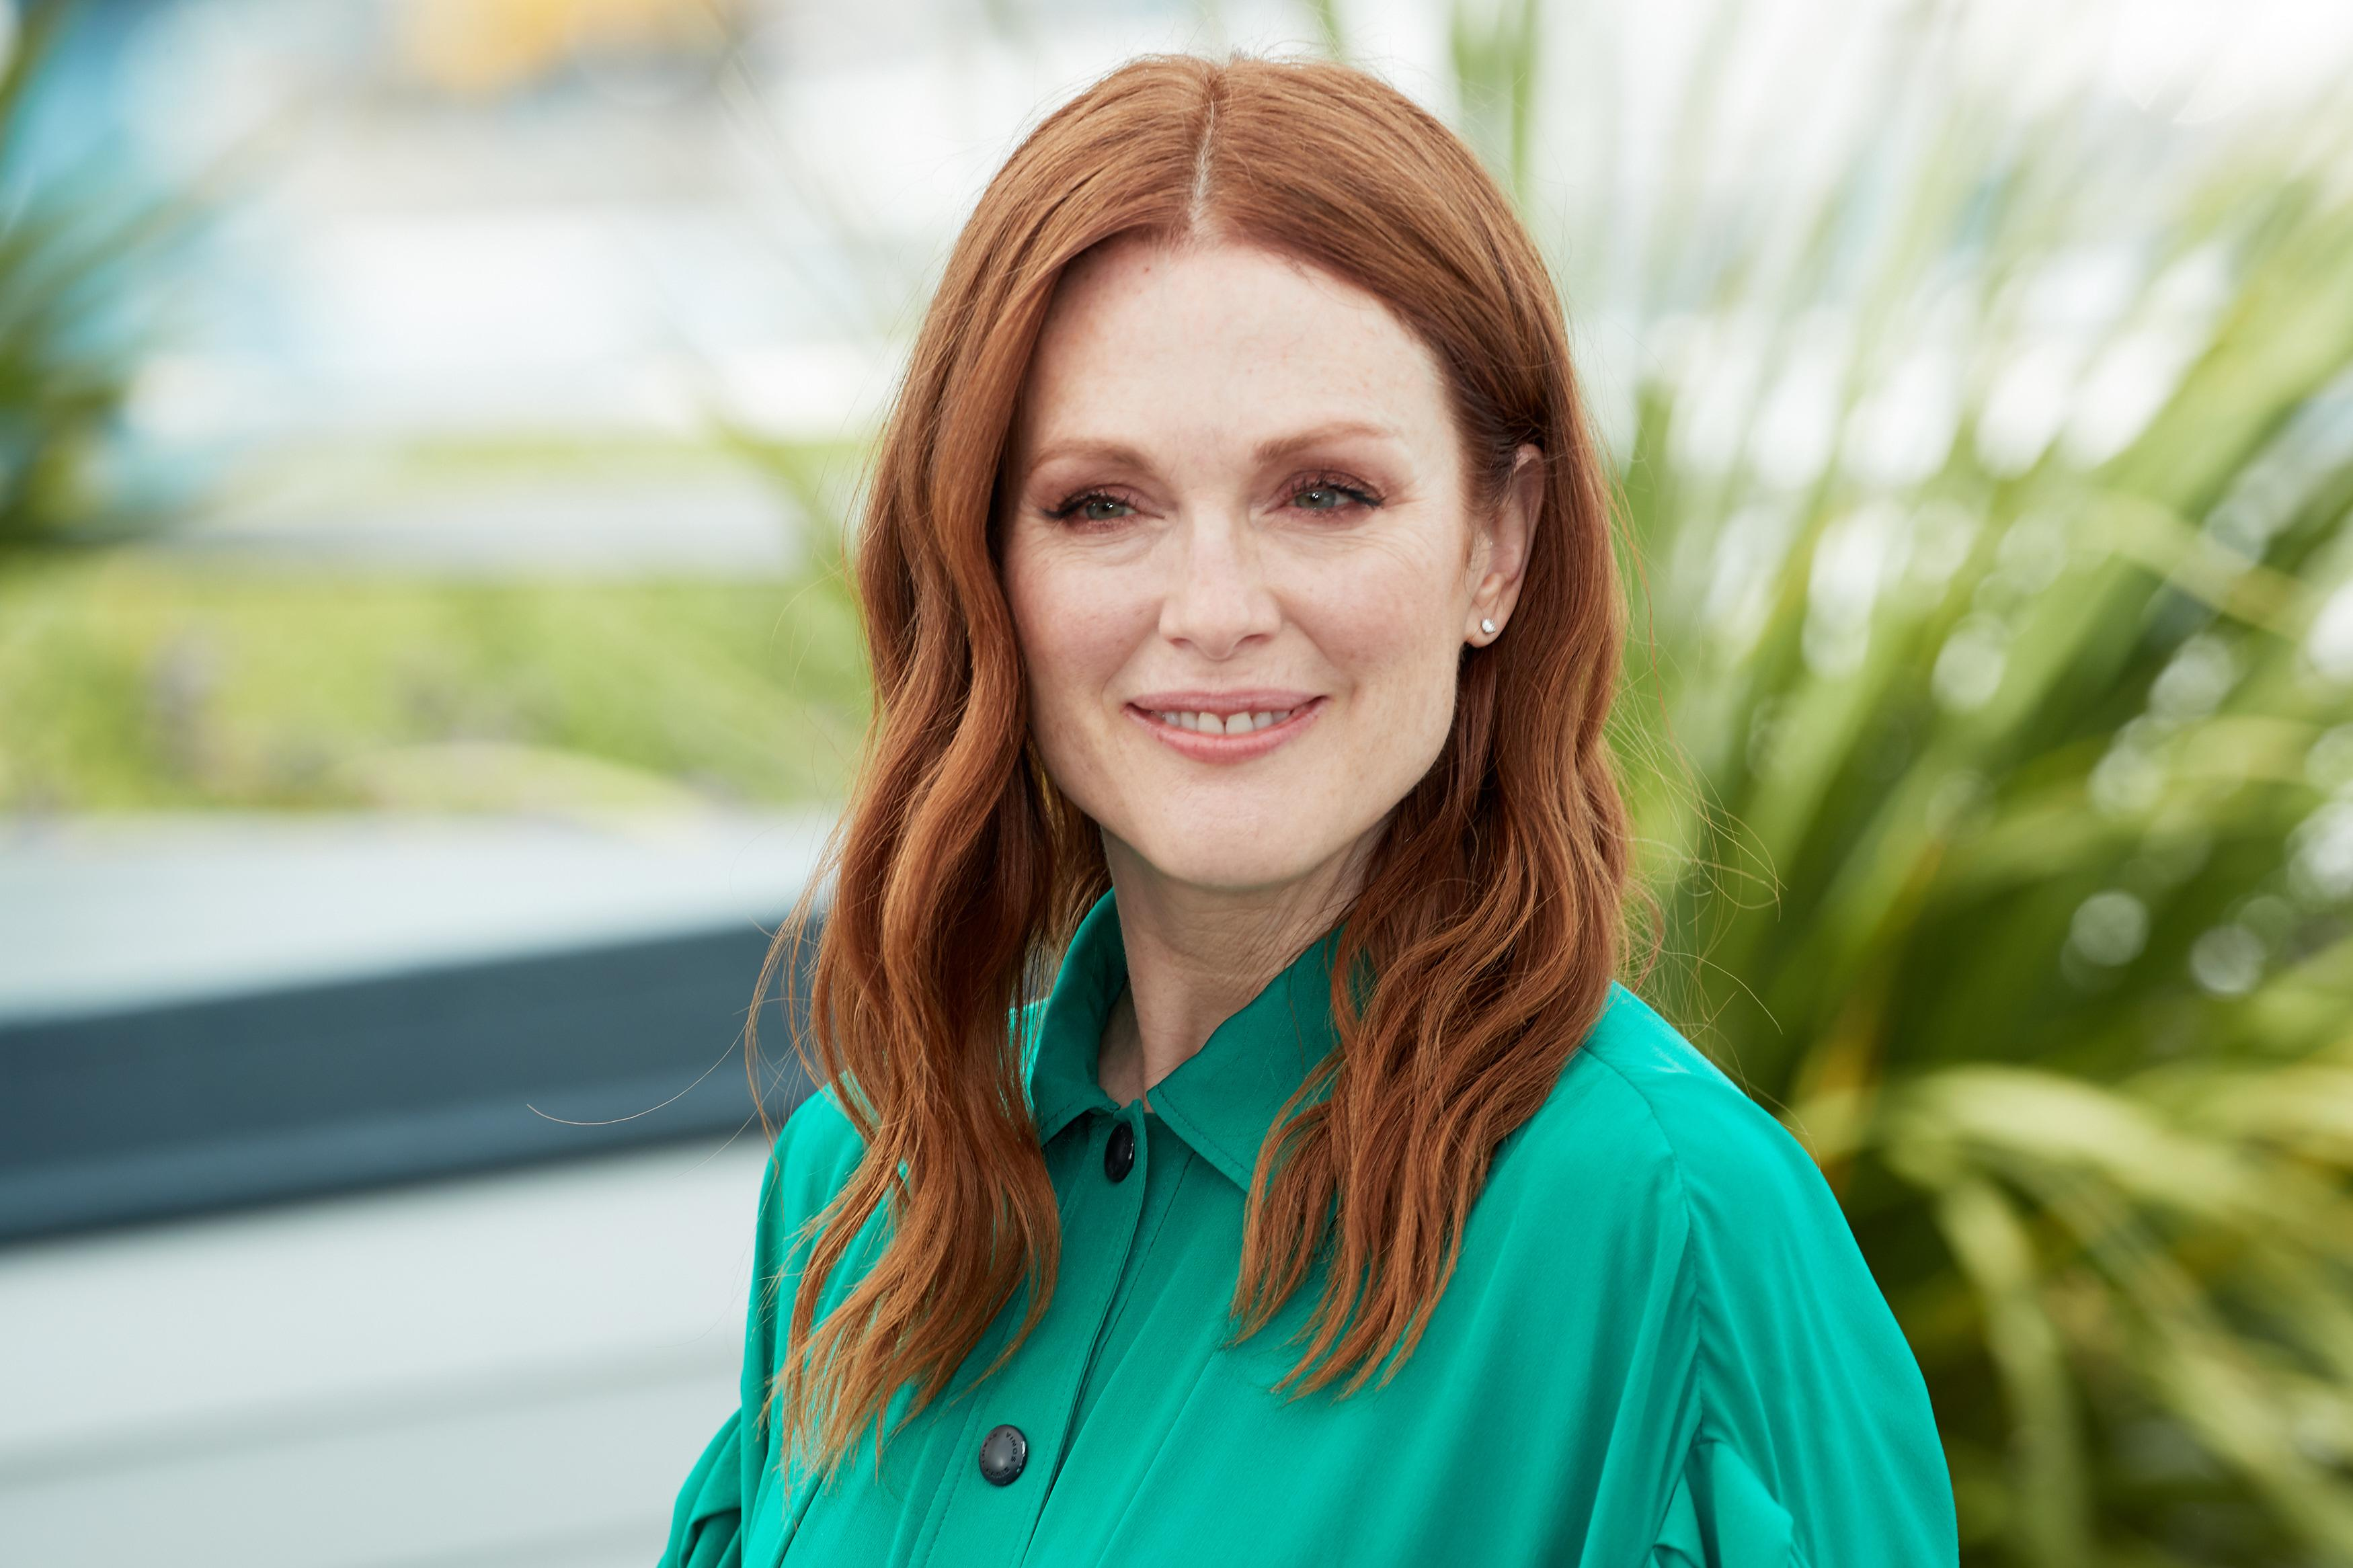 julianne moore says james toback approached her twice in